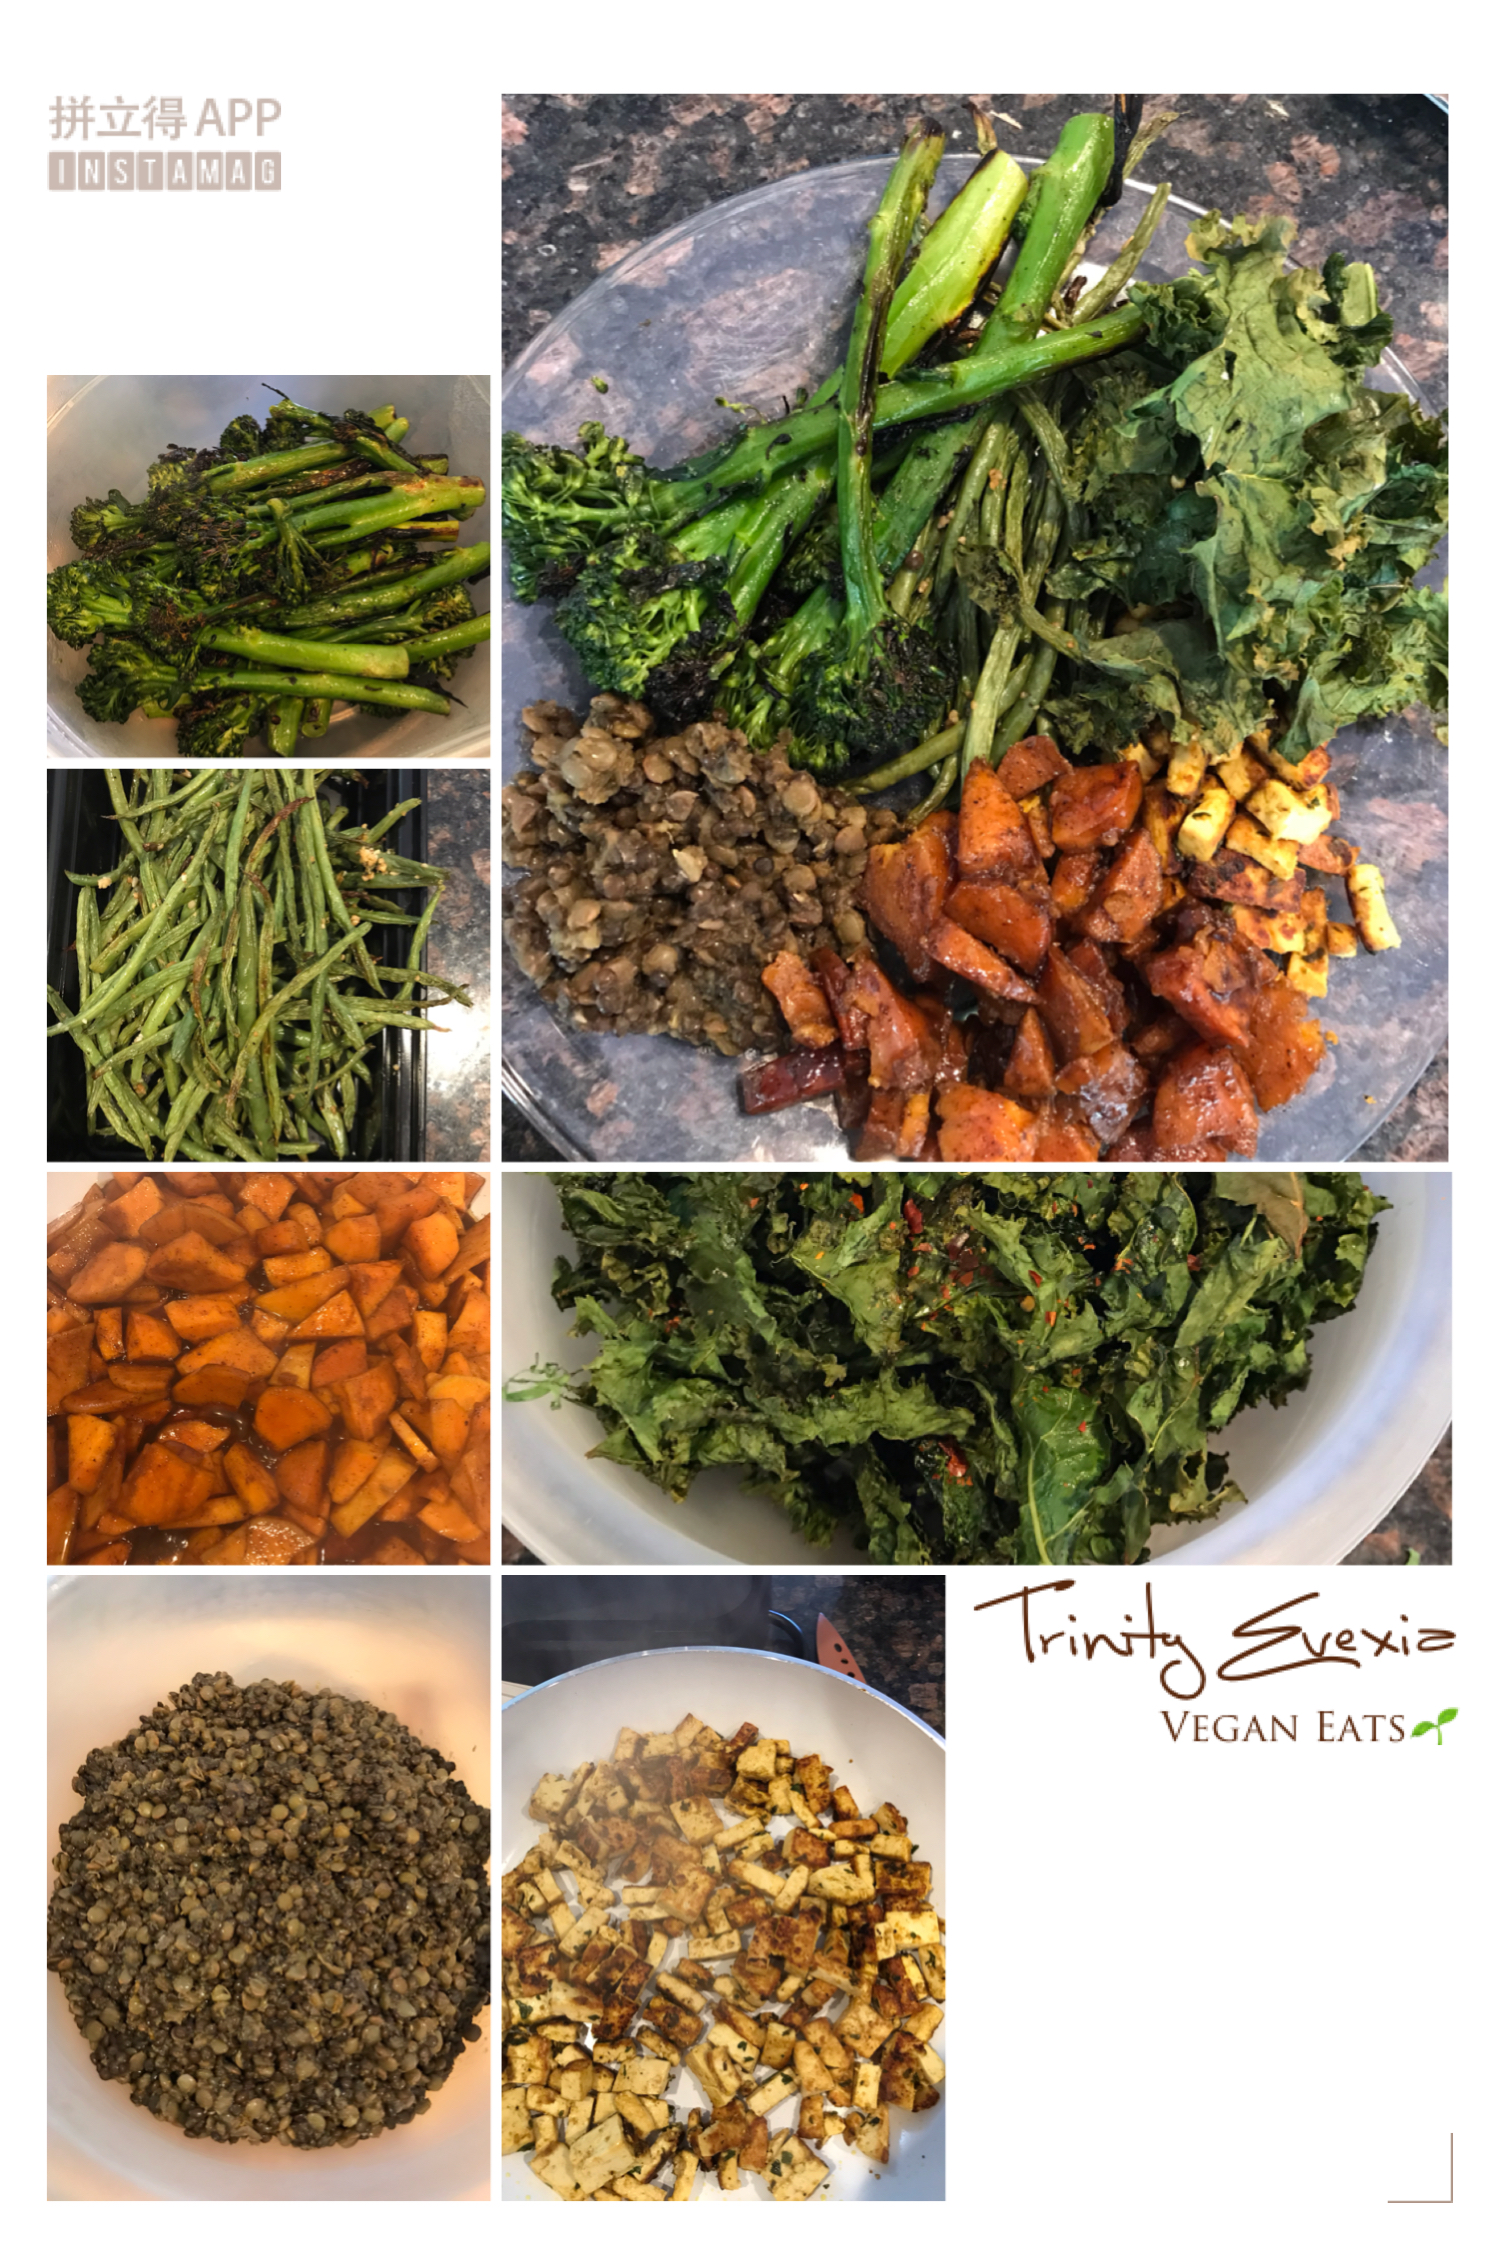 (Candied (vegan) yams, black and green lentils, stir fry tofu, pan seared broccolini, kale chips and roasted french style green beans)